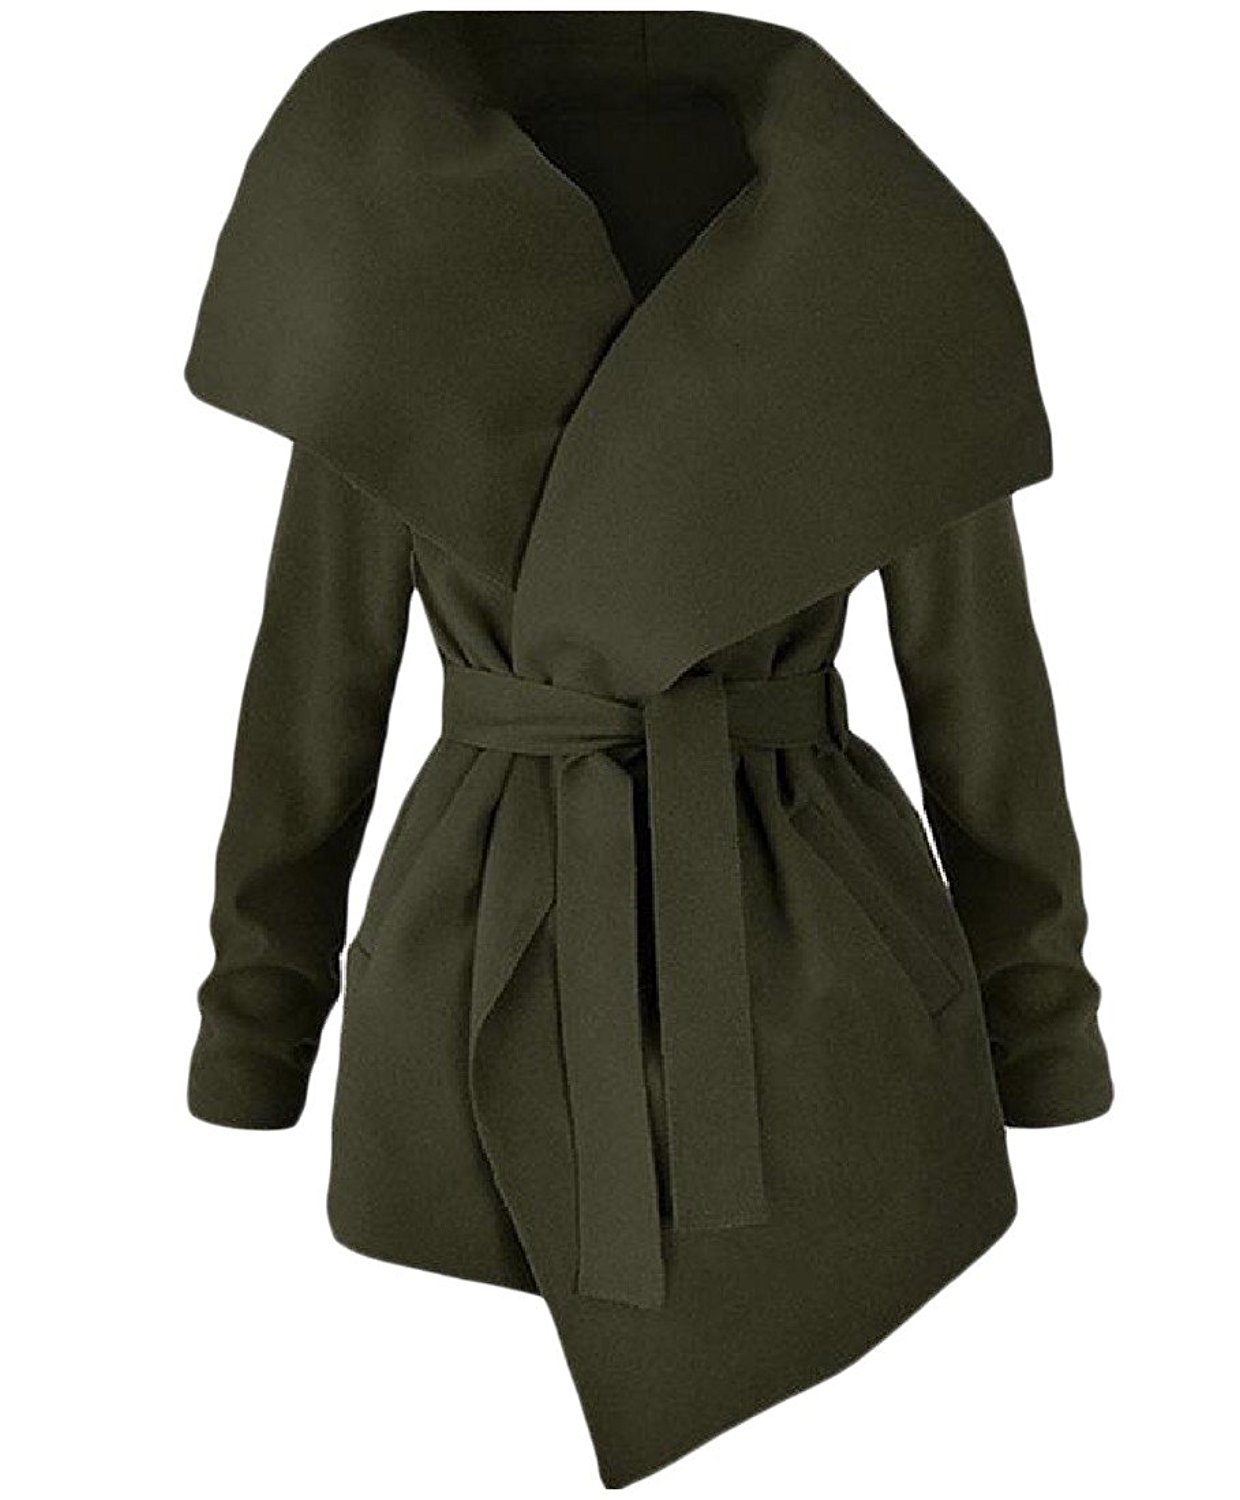 Zimaes-Women Casual Belted Design Fold-Collar Trench Coat Cardigan